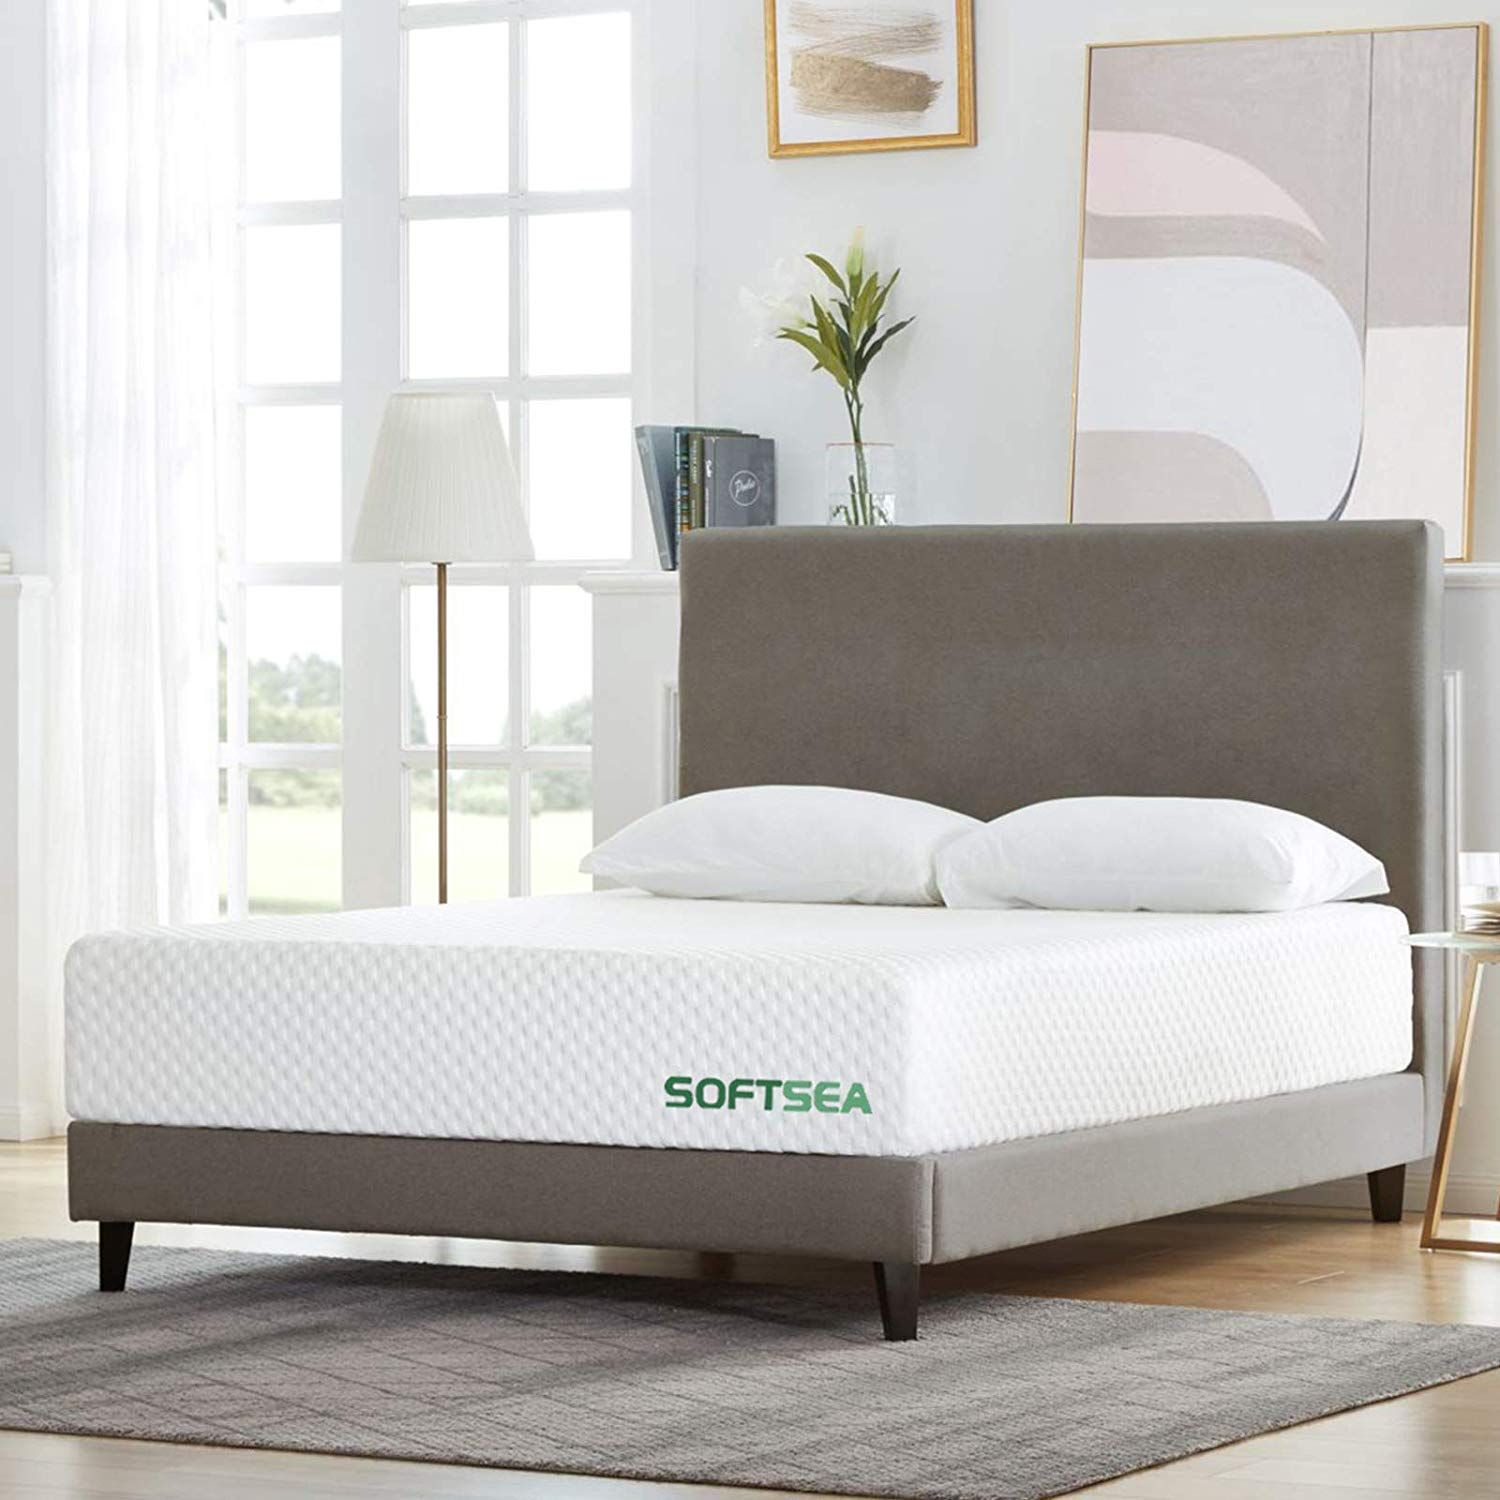 Softsea 12 Inch Cooling Gel Memory Foam Mattress In A Box For A Medium Comfort